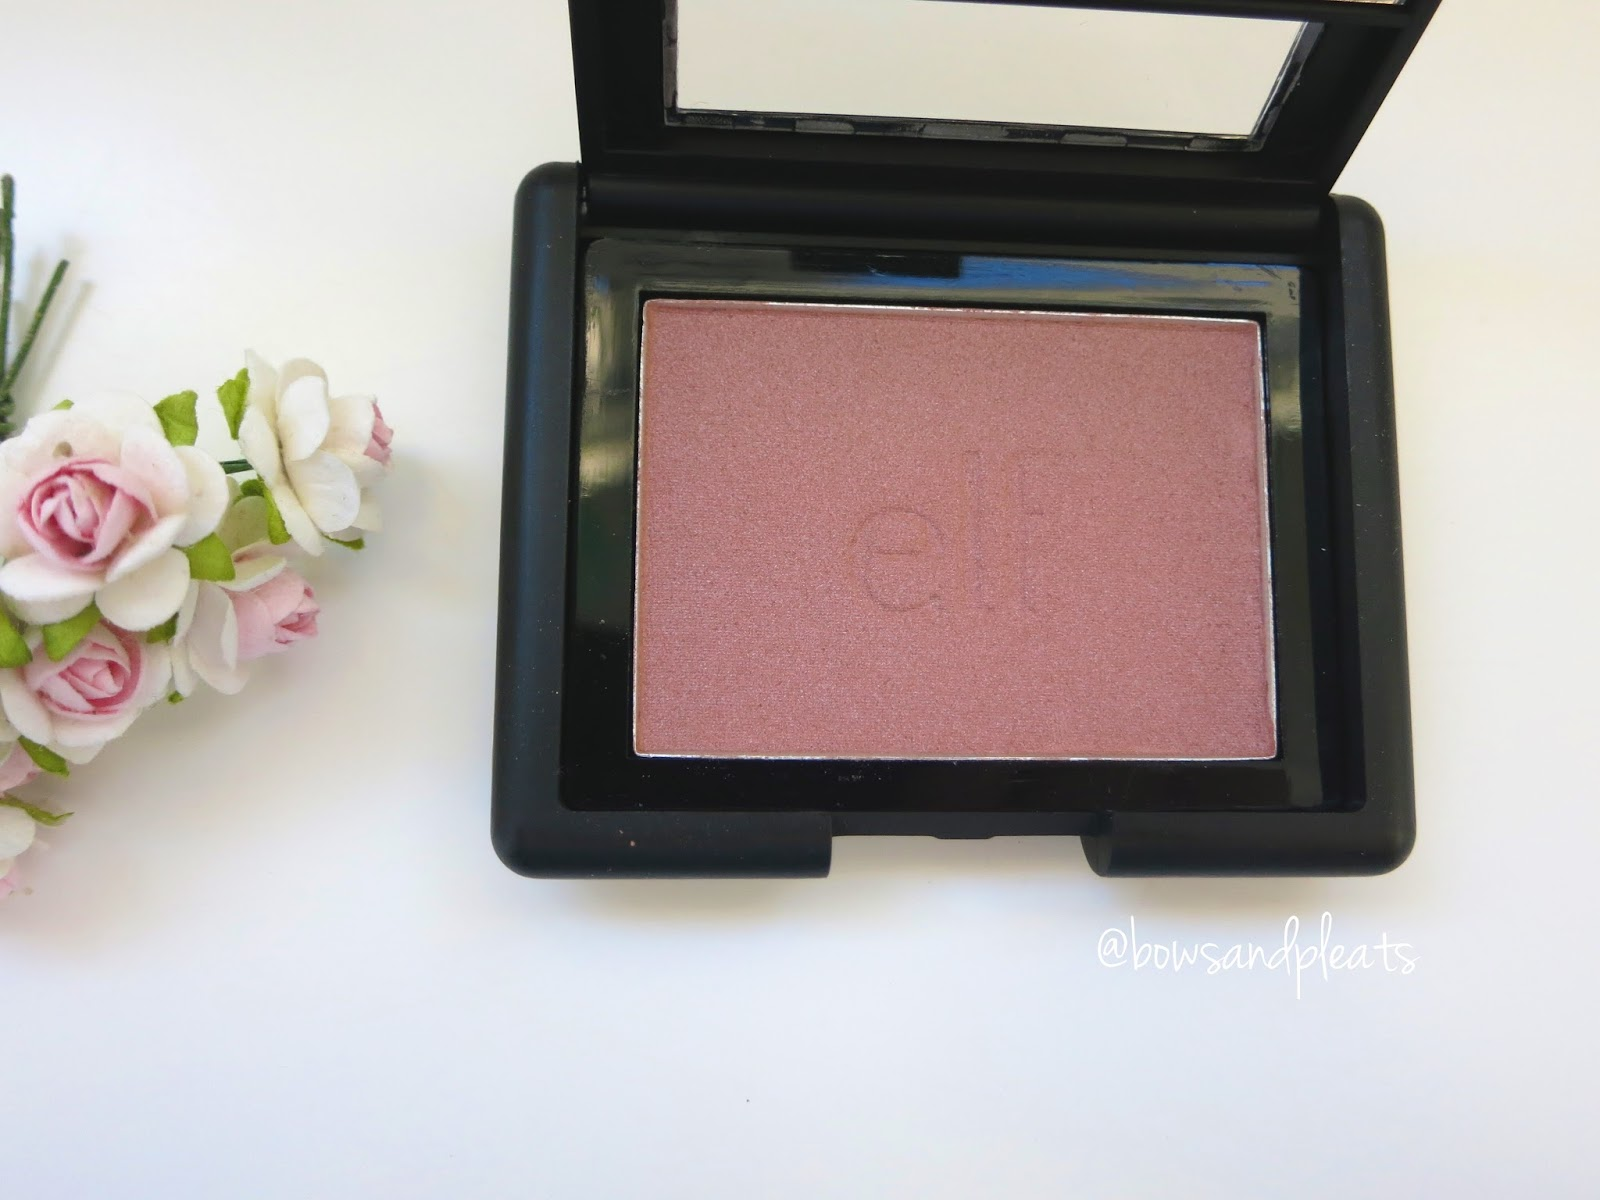 e.l.f studio blush in mellow mauve